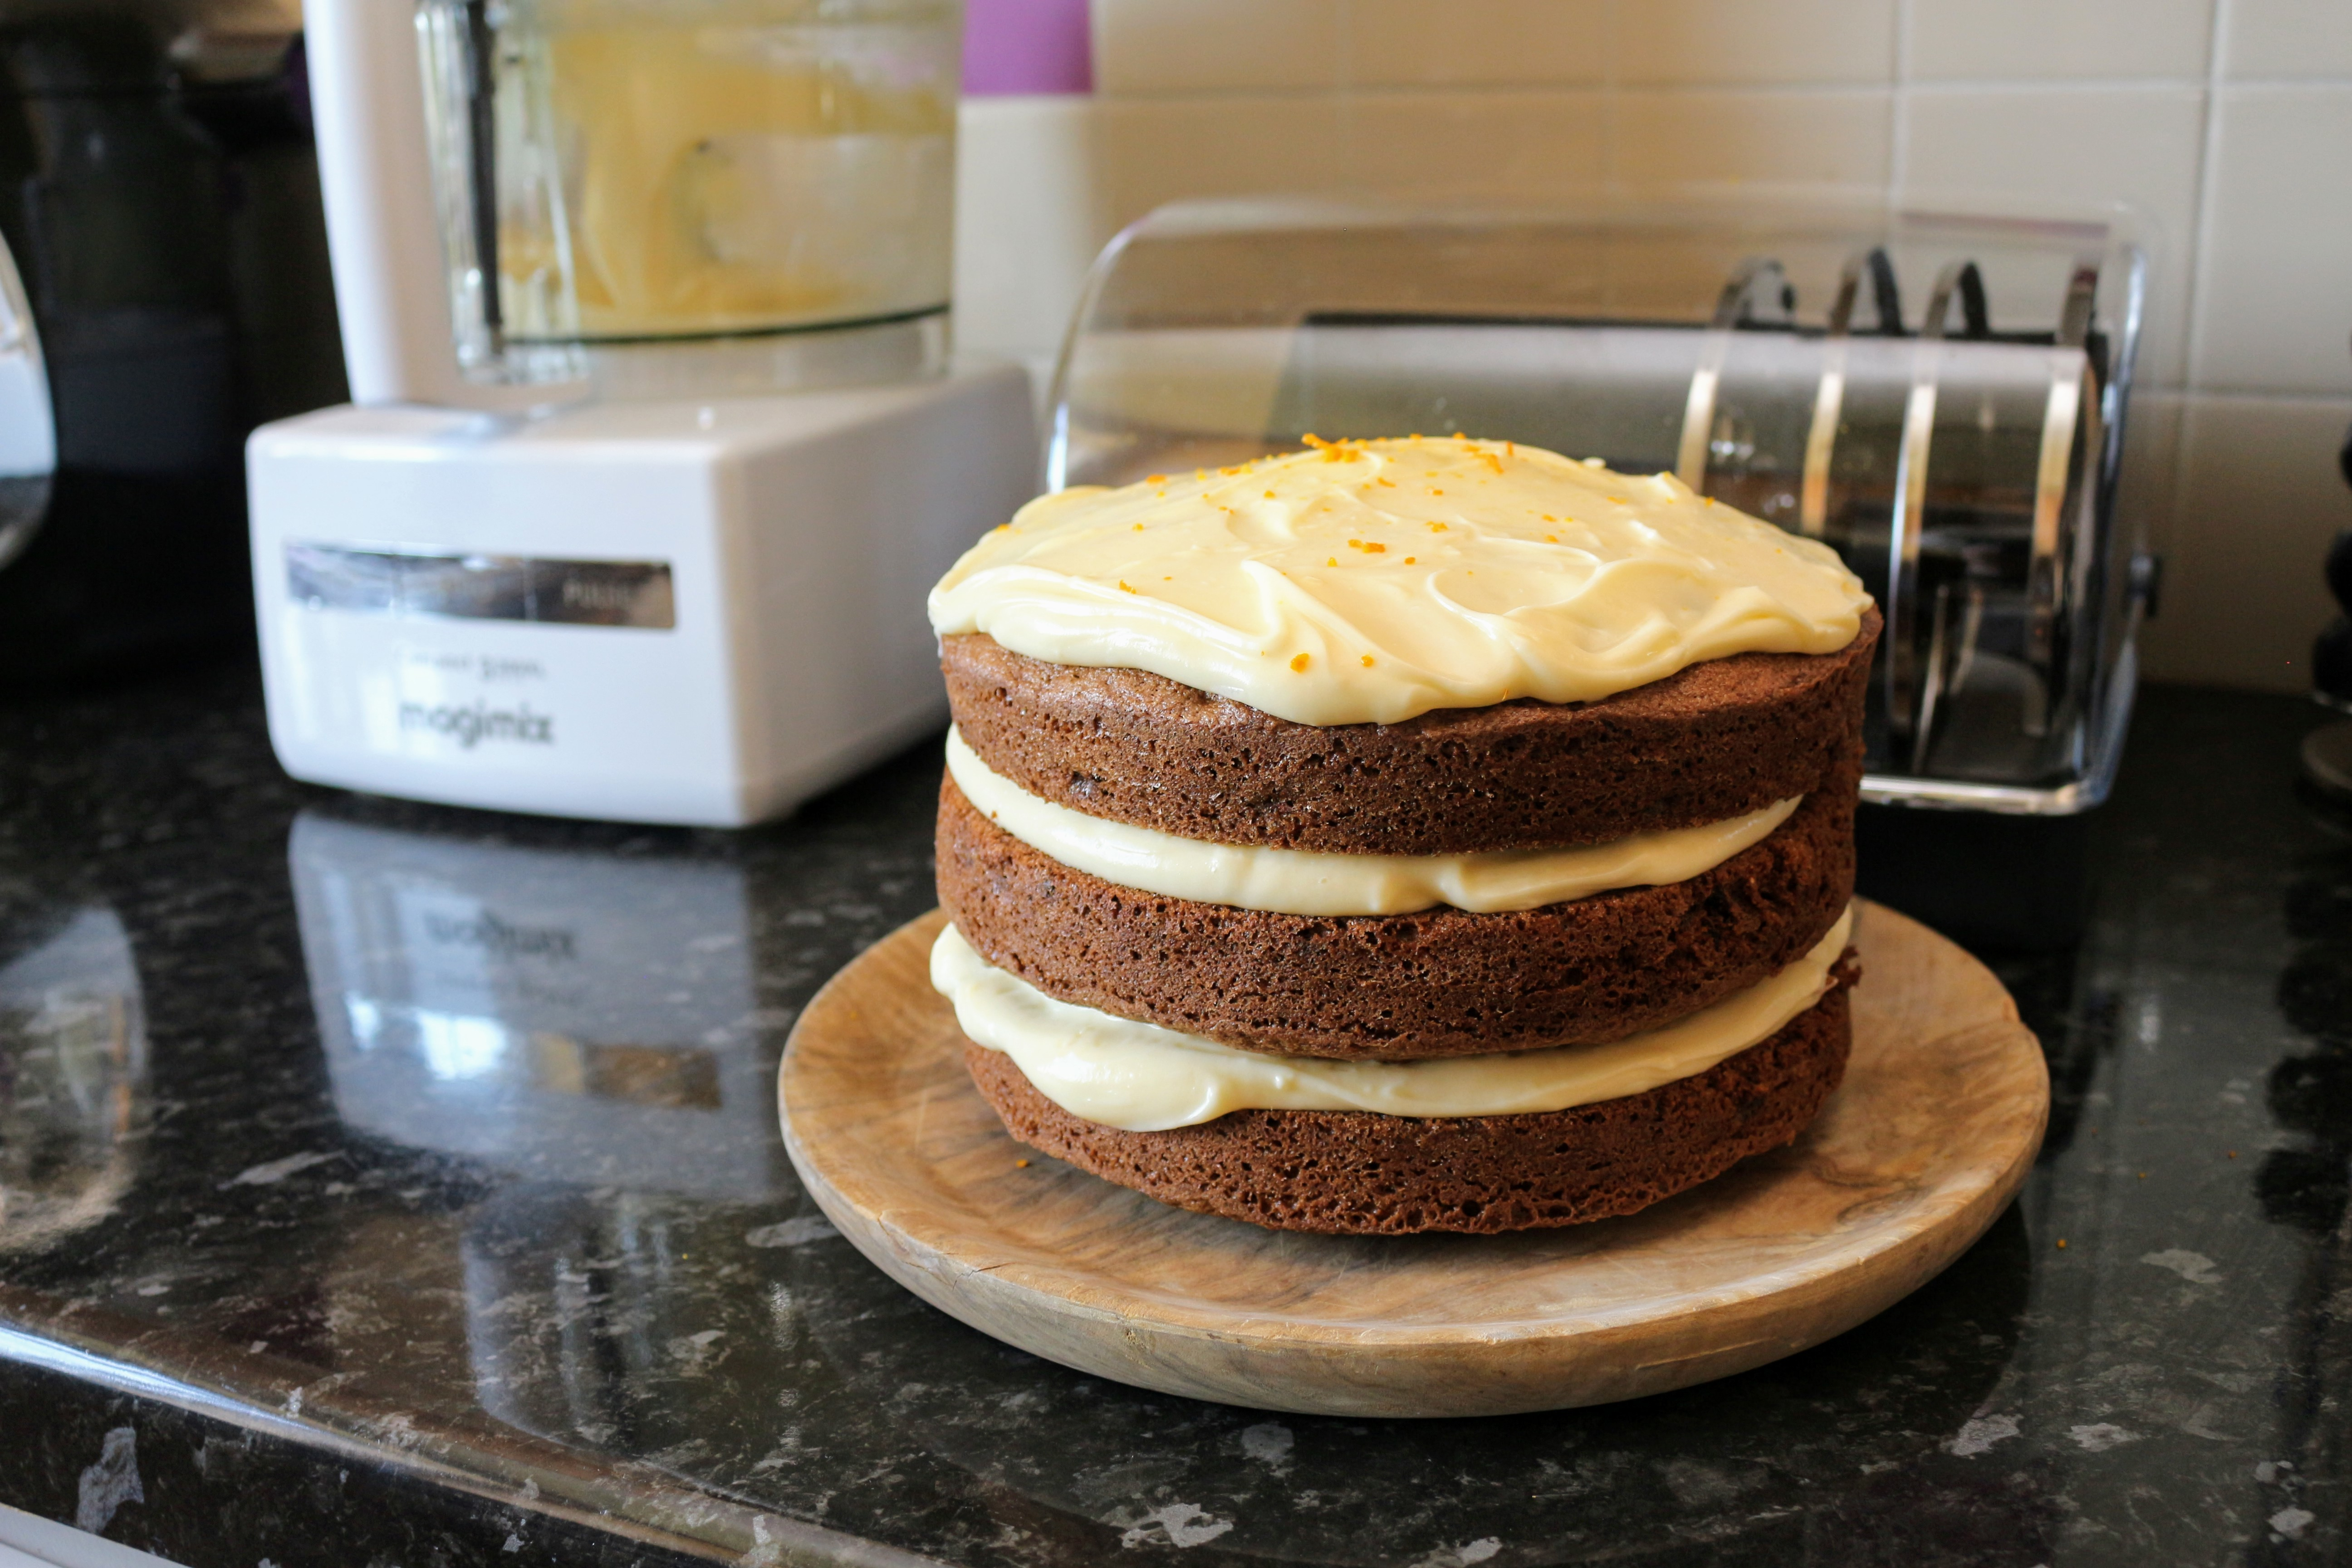 The finished Carrot Cake